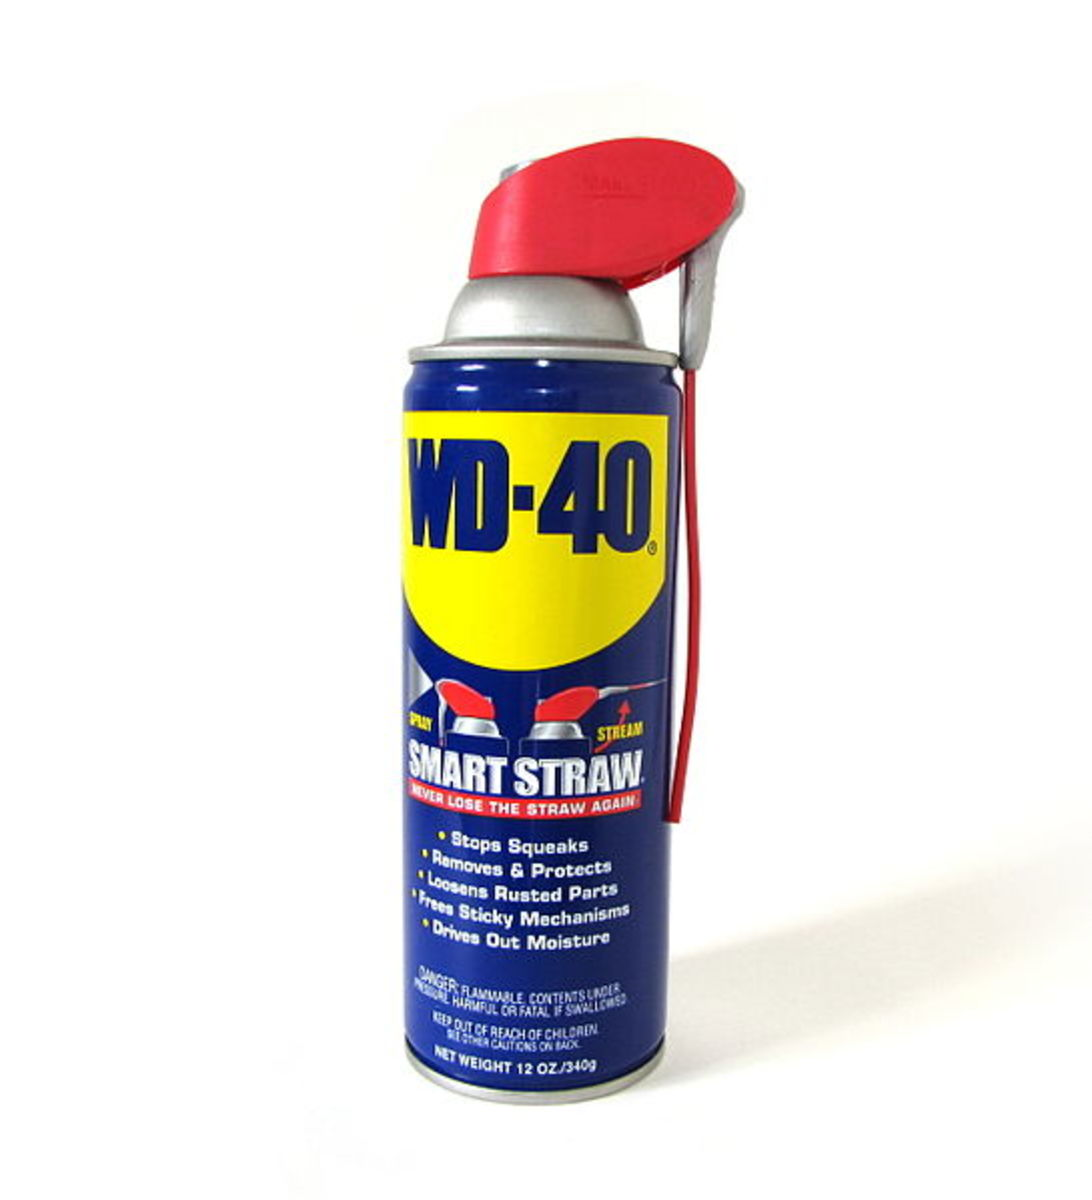 wd-40-awesome-ways-to-use-it